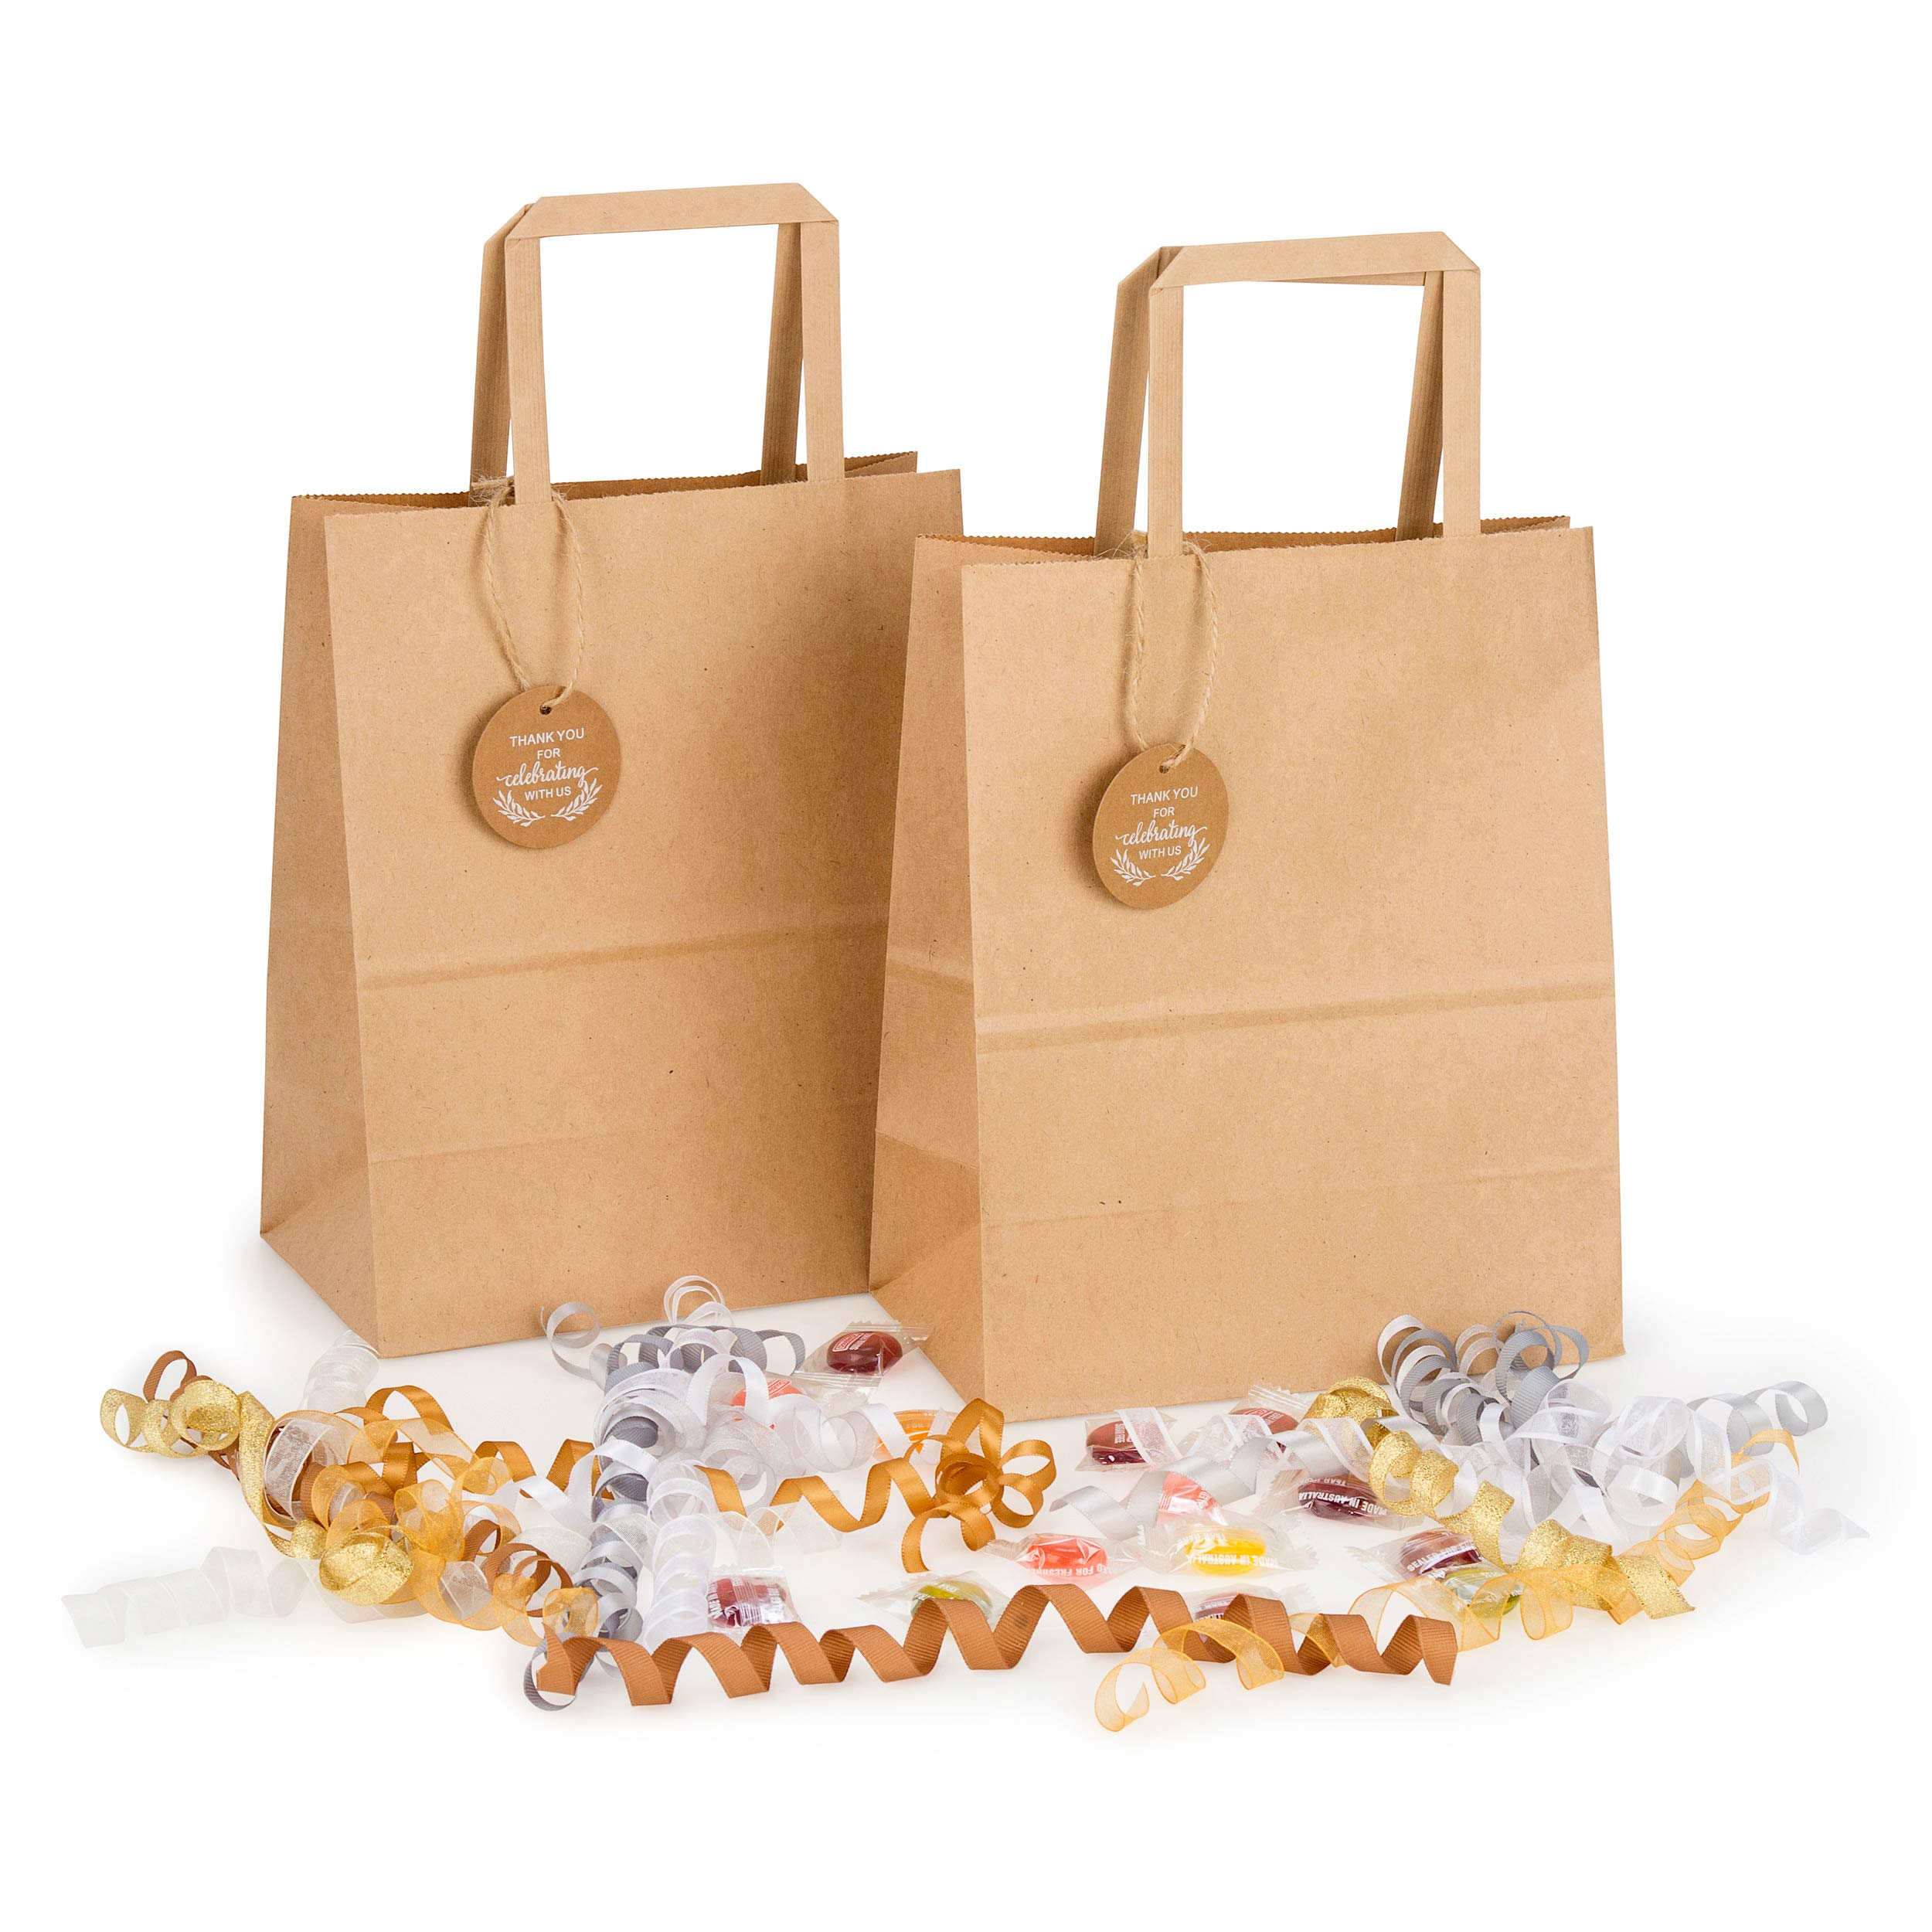 Kraft Paper Bags Bulk for Wedding Welcome Gifts, Goody, Bridal Shower, Reception, Party, Birthday, Celebration, Event, Retreat, Reunion | Set of 50 pcs, Medium 8x4.75x10 in | Includes Tags and Strings